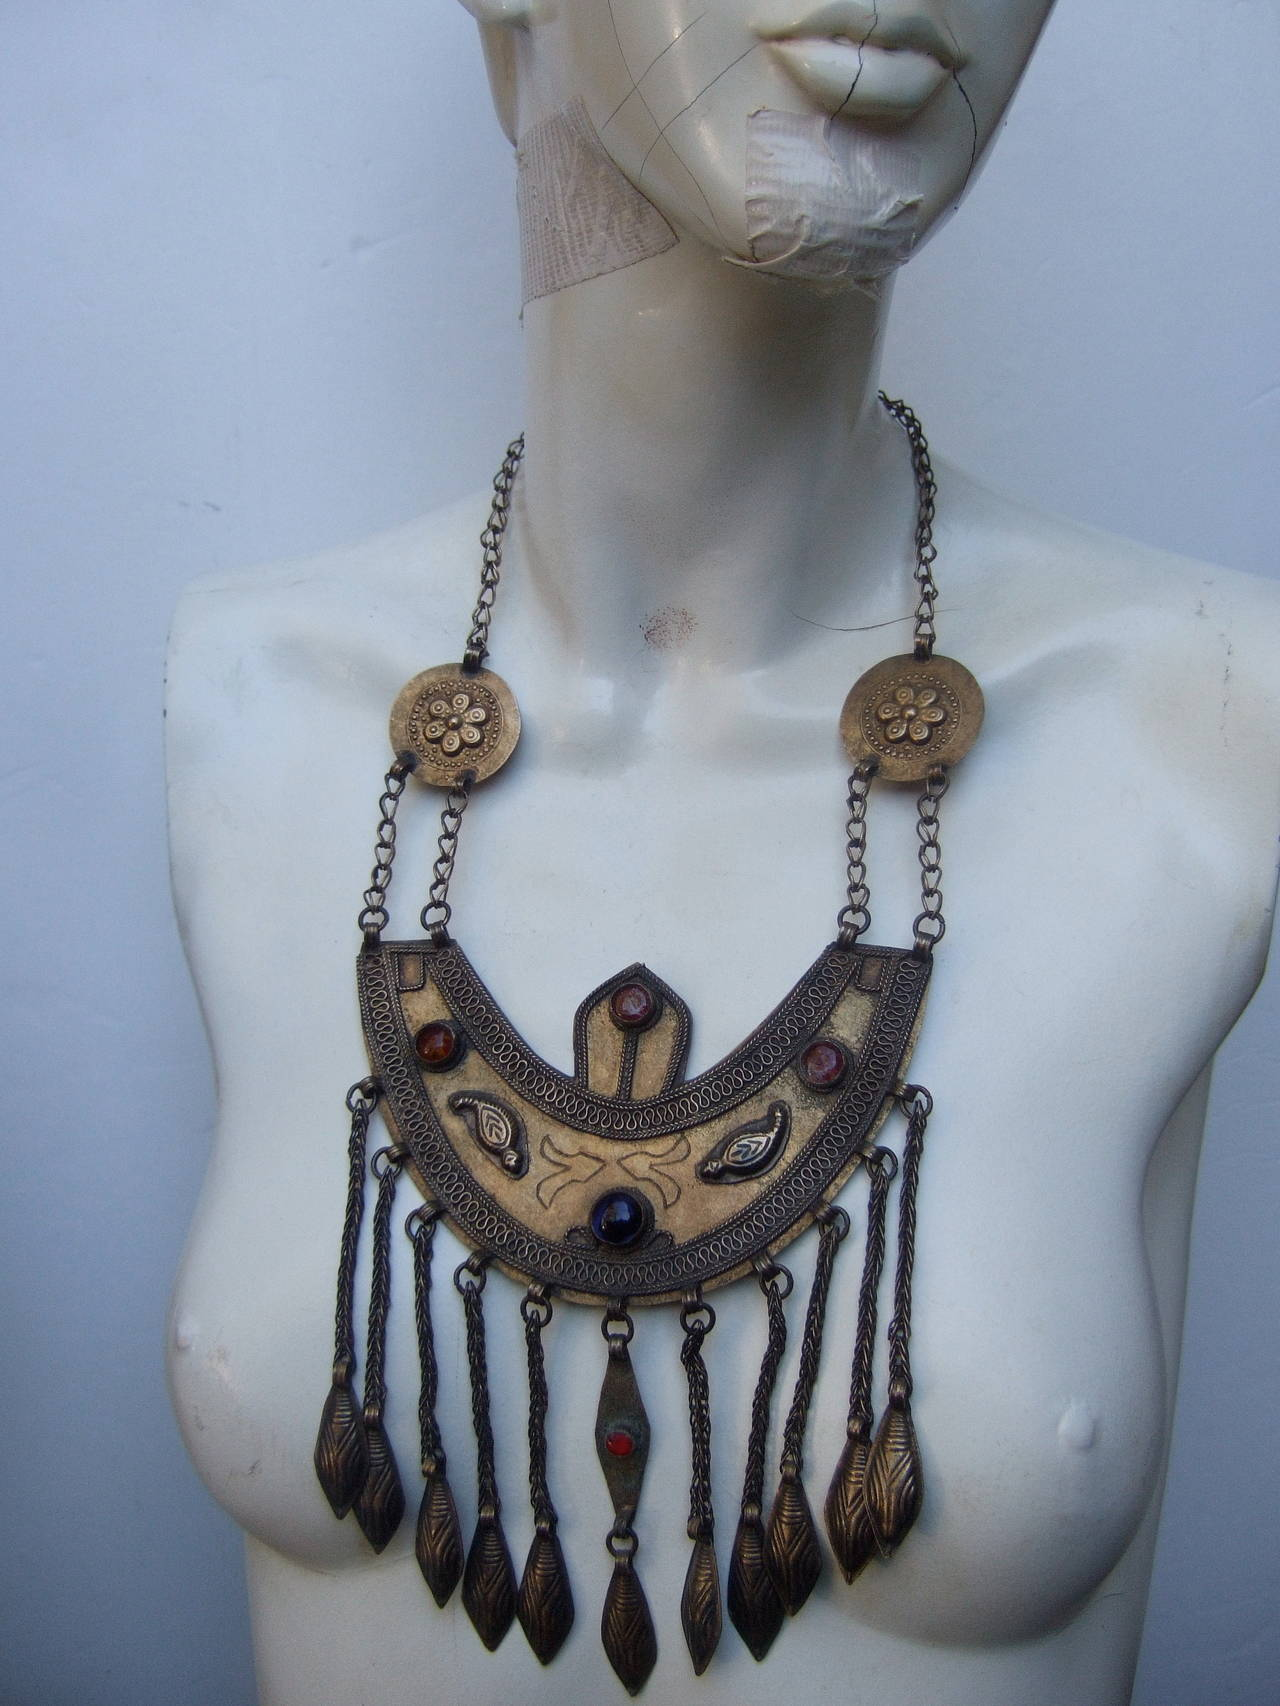 Massive Egyptian Revival Style Jeweled Serpent Ceremonial Necklace For Sale 4